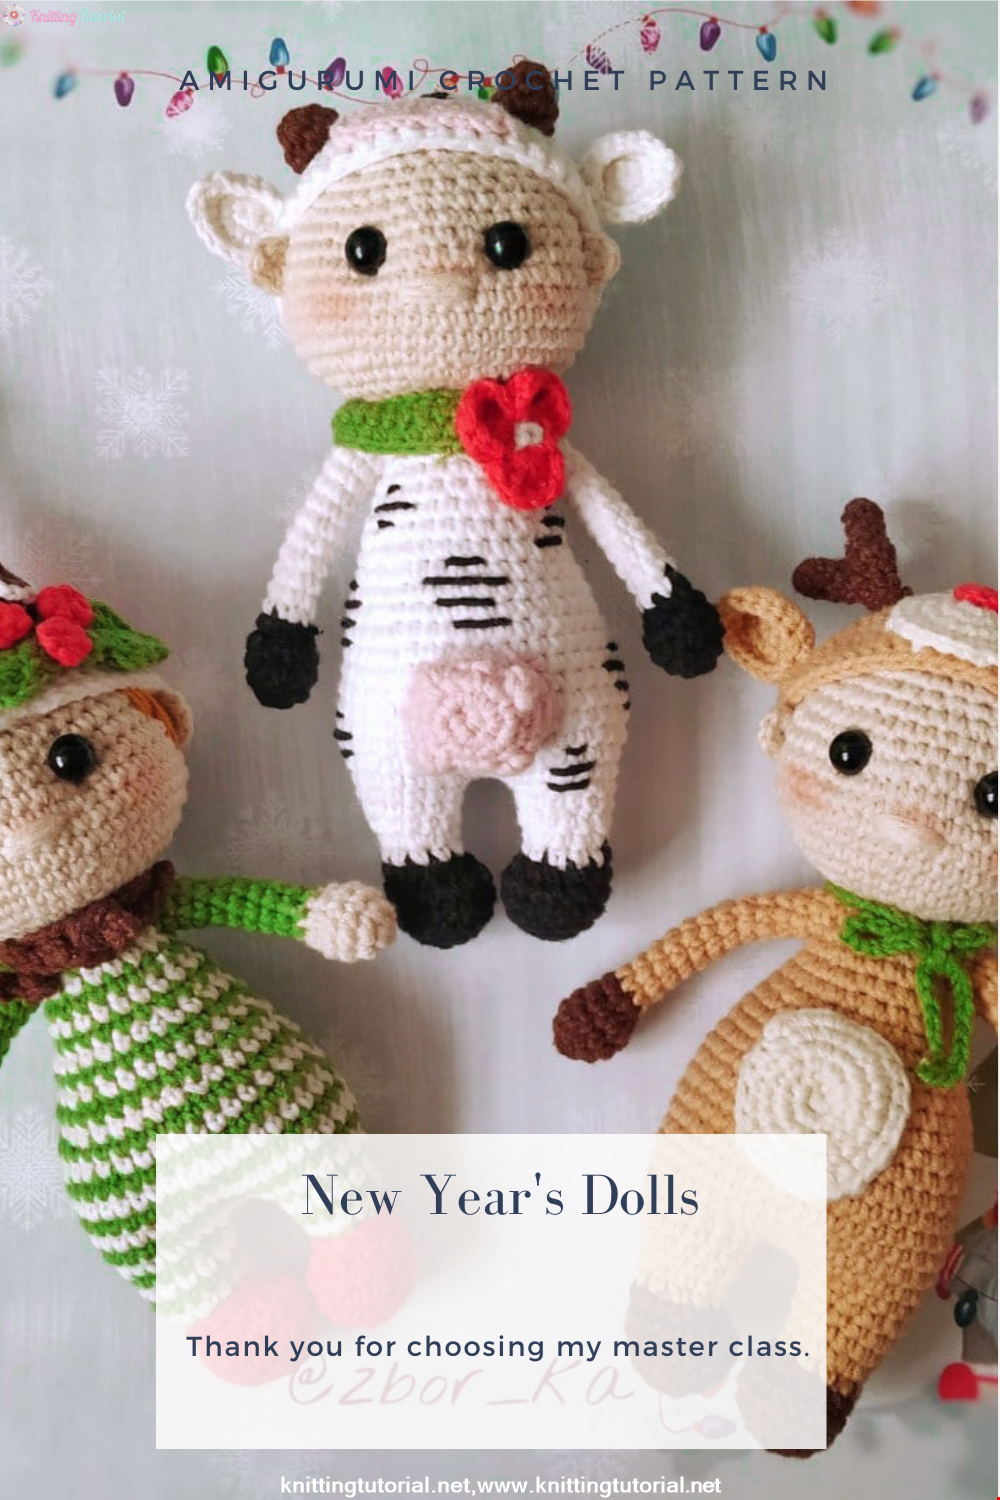 Amigurumi New Year's Dolls Crochet Pattern